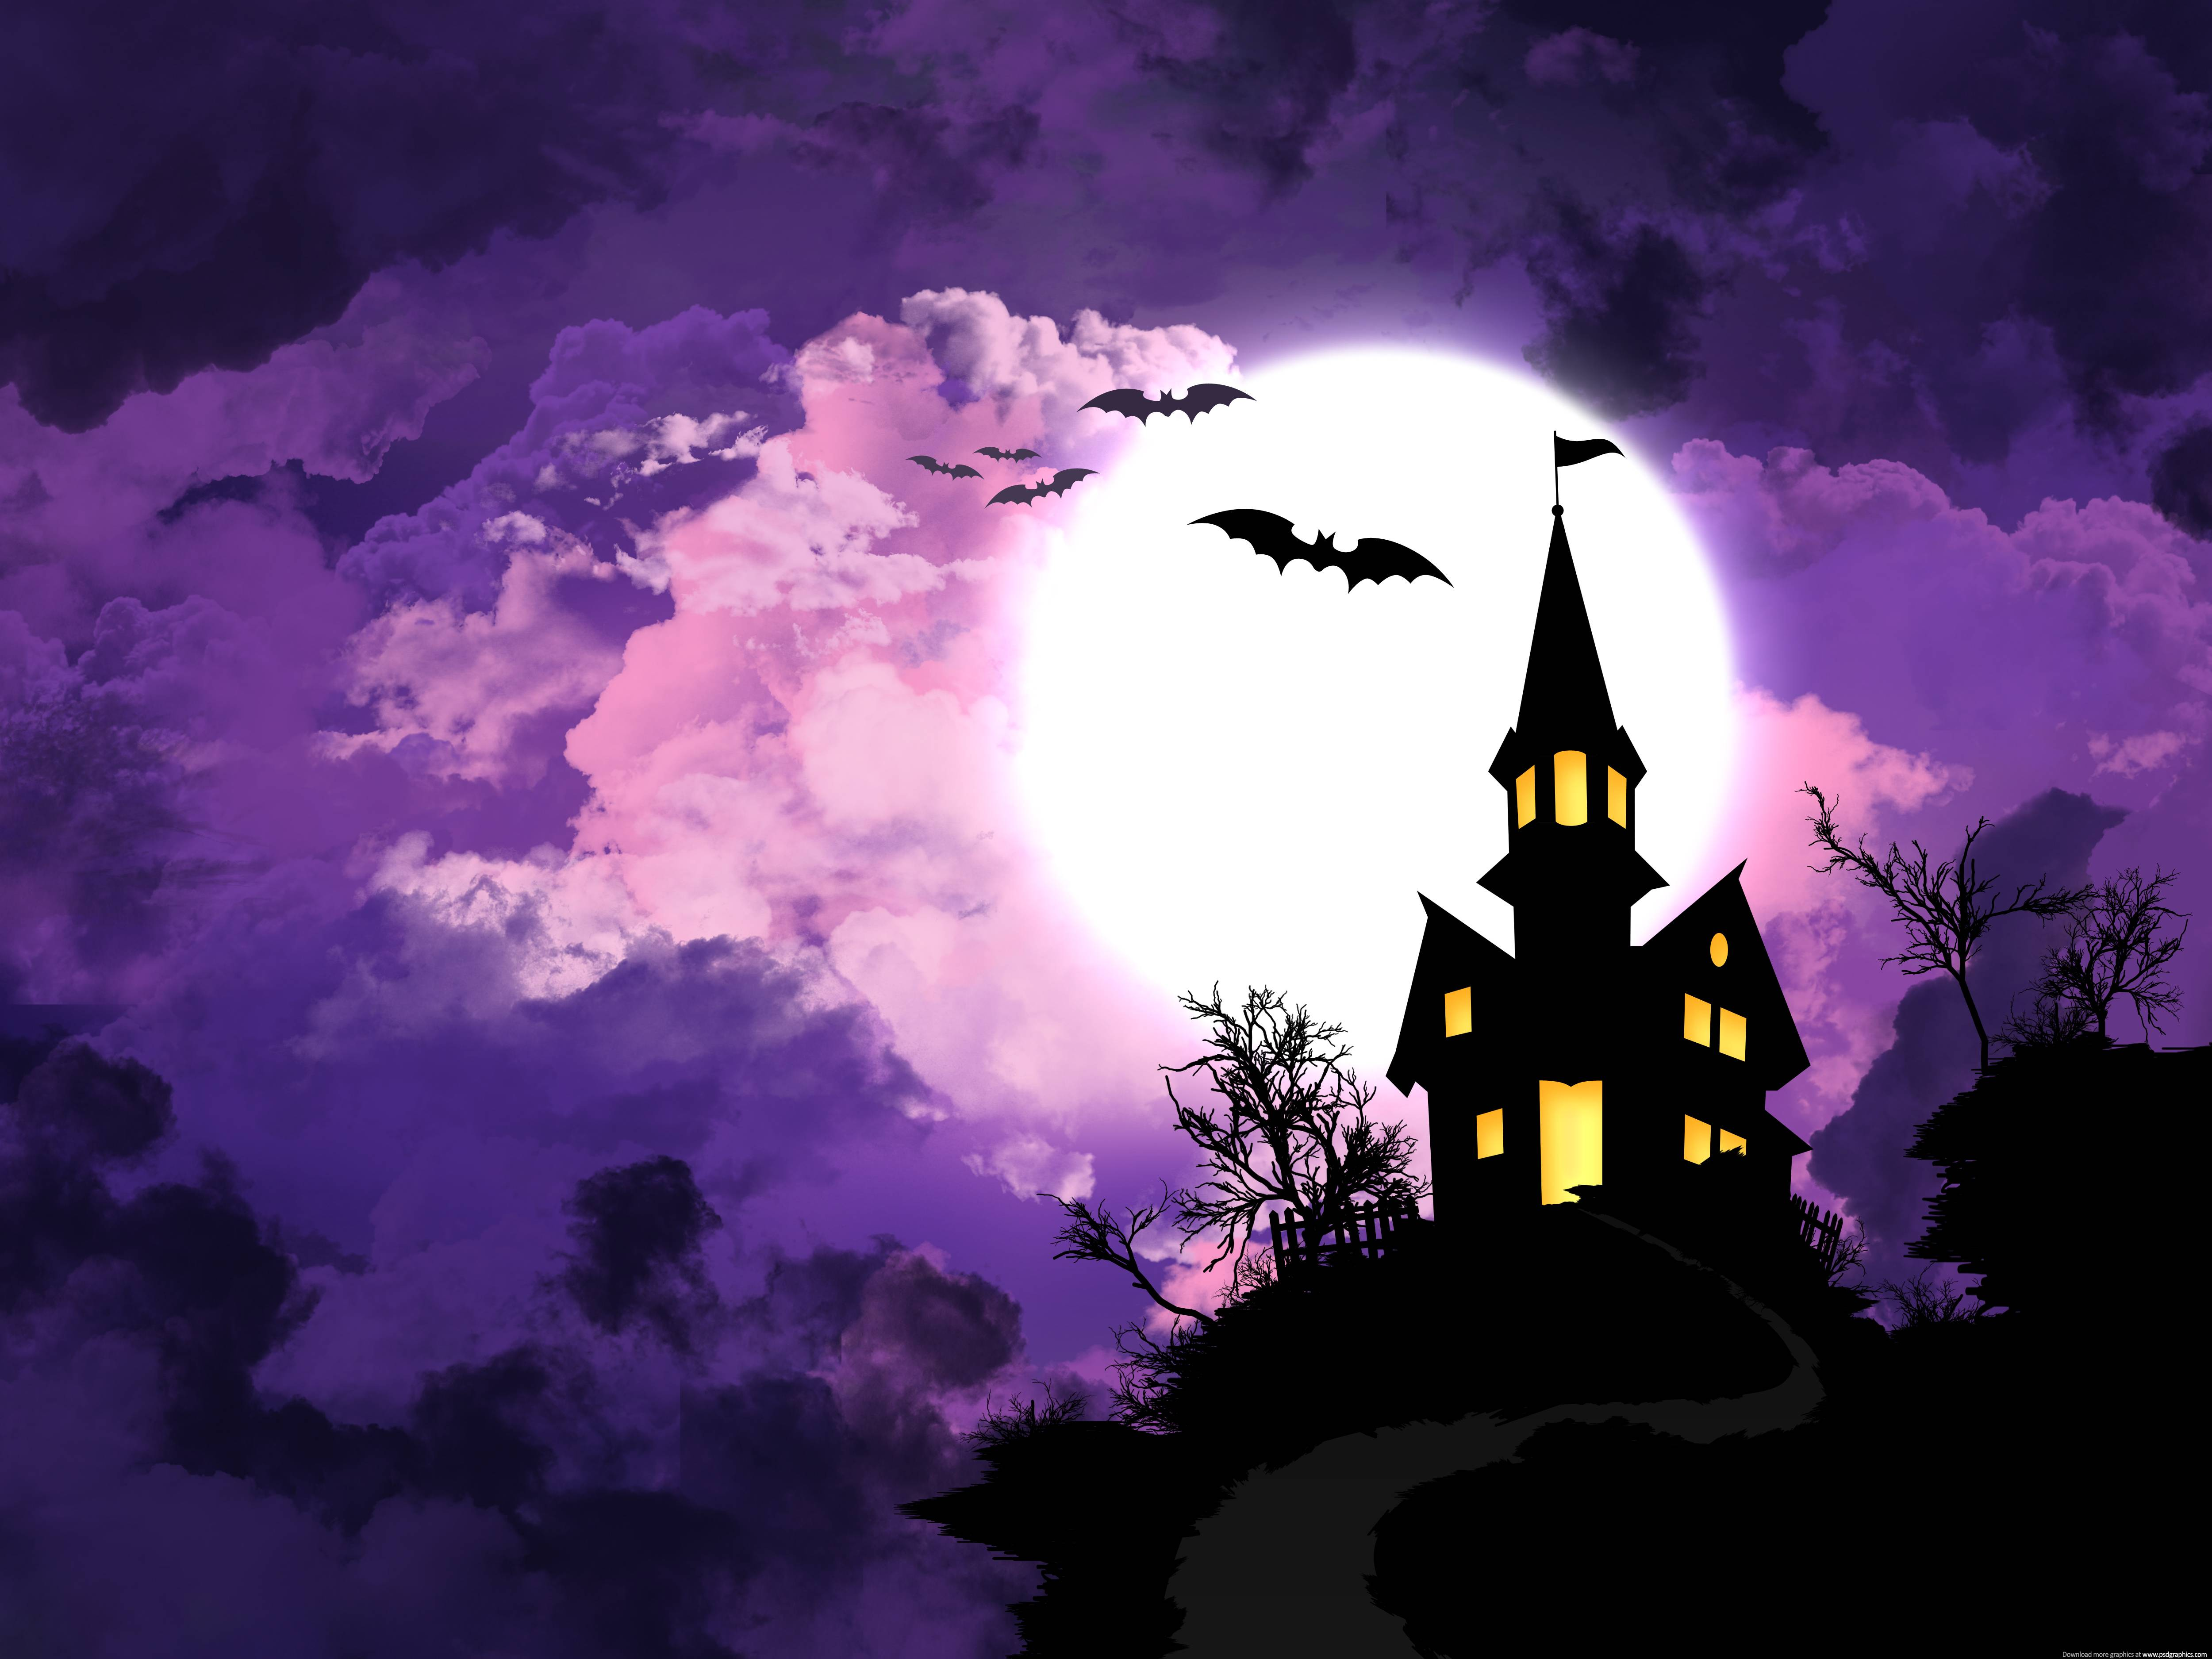 Haunted House Halloween Wallpapers Top Free Haunted House Halloween Backgrounds Wallpaperaccess